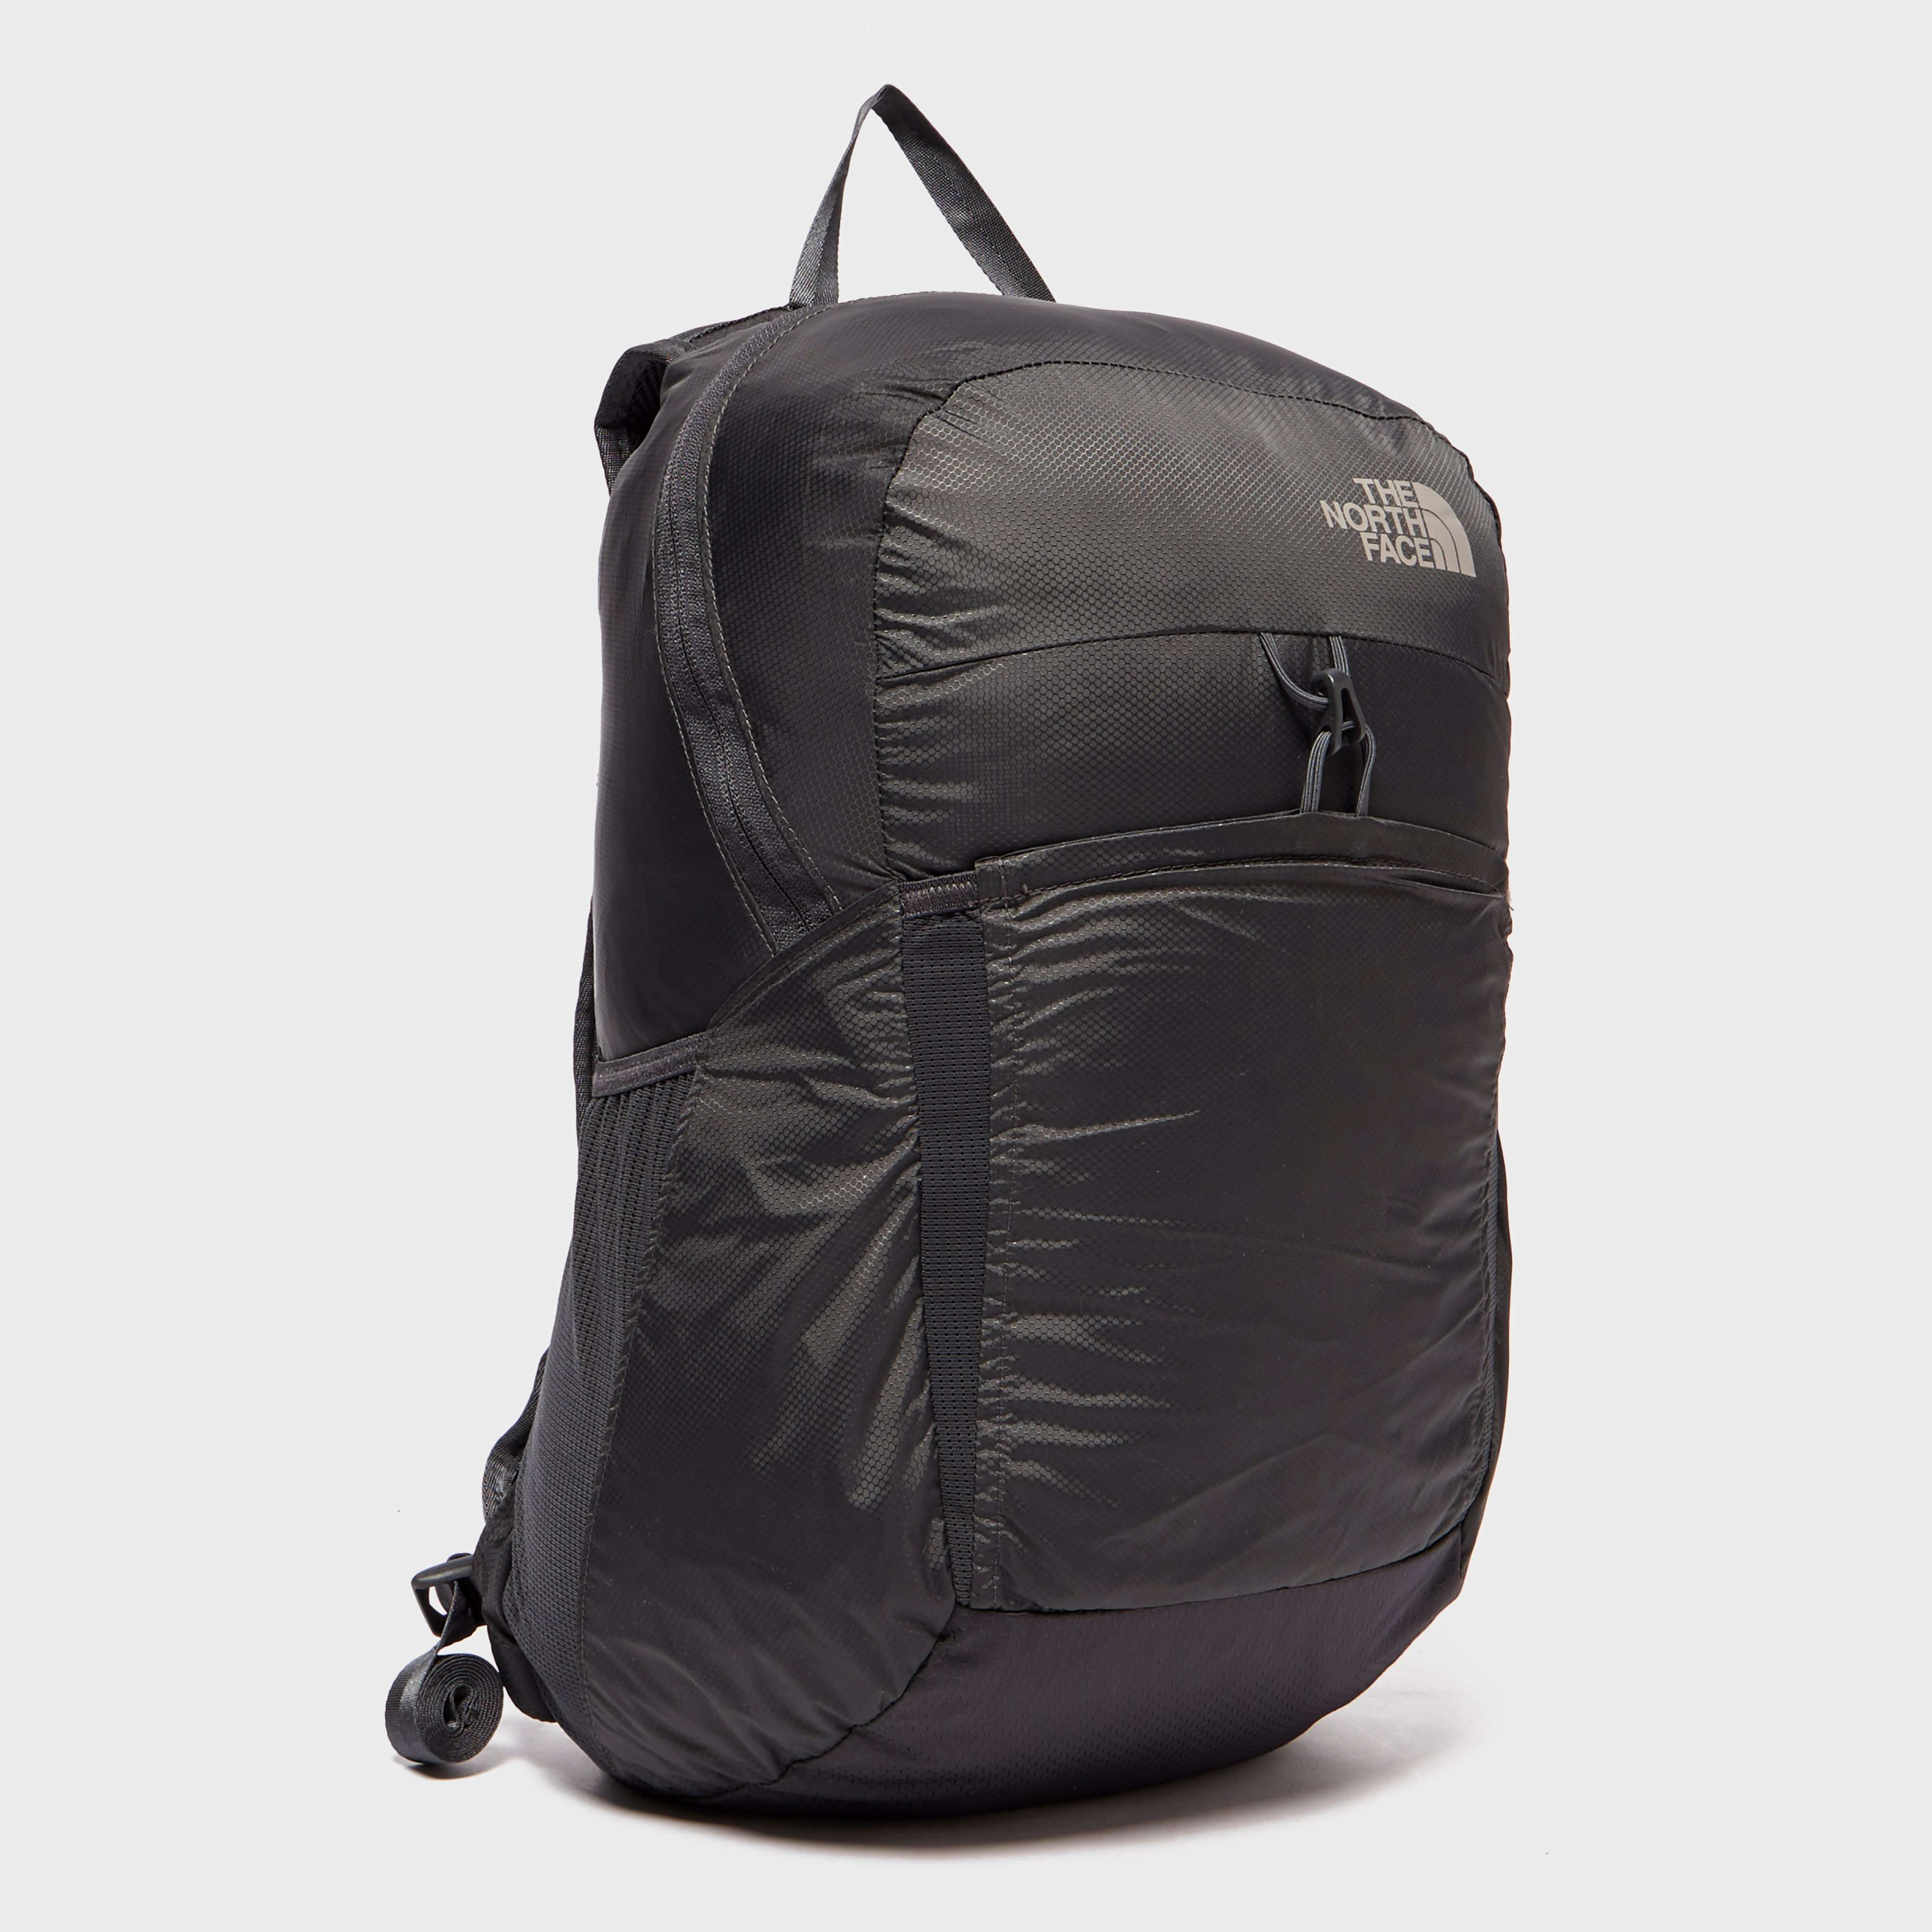 THE NORTH FACE Flyweight 17L Rucksack